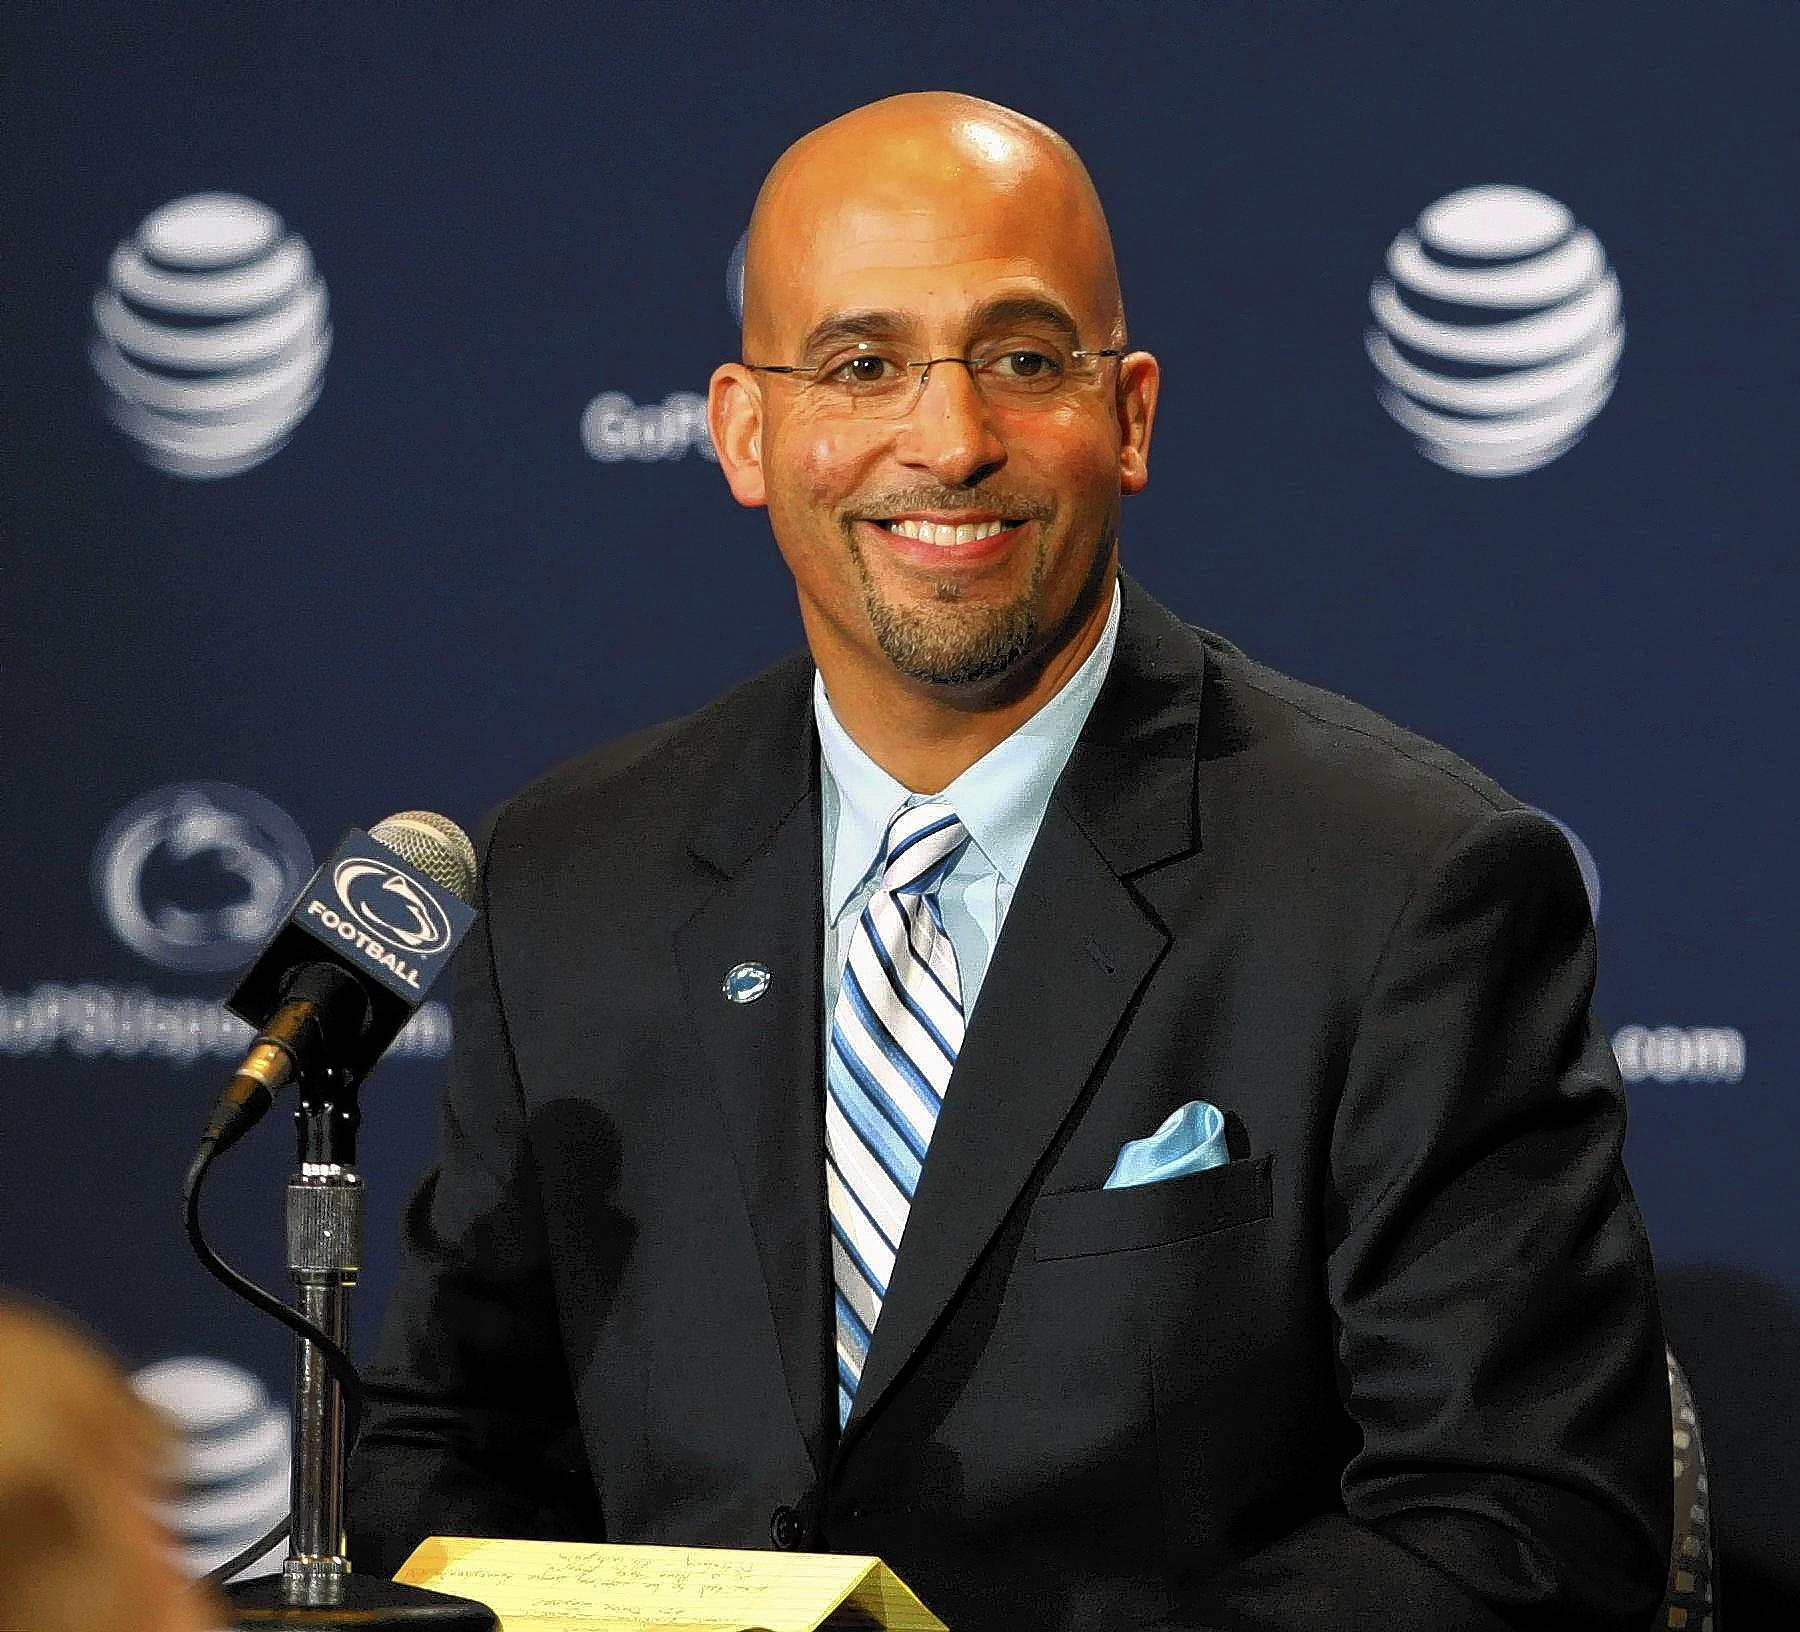 Penn State football coach James Franklin will be appearing at the Nike Coach of the Year Clinic at the Holiday Inn Conference Center in Fogelsville on Feb. 28.